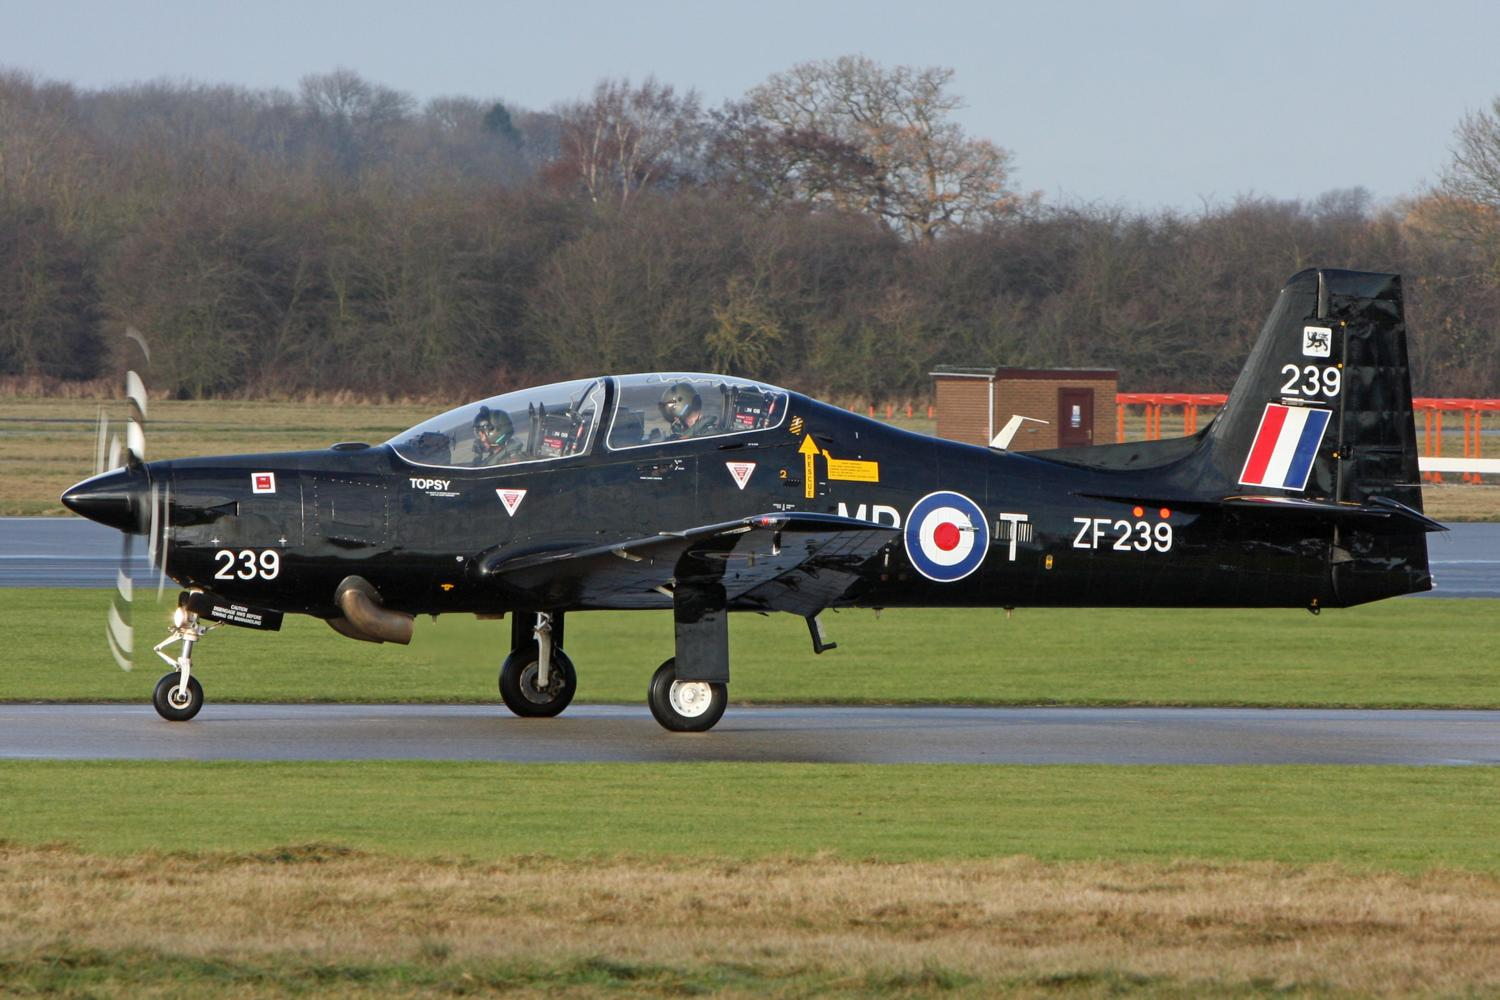 1 FTS RAF Linton On Ouse